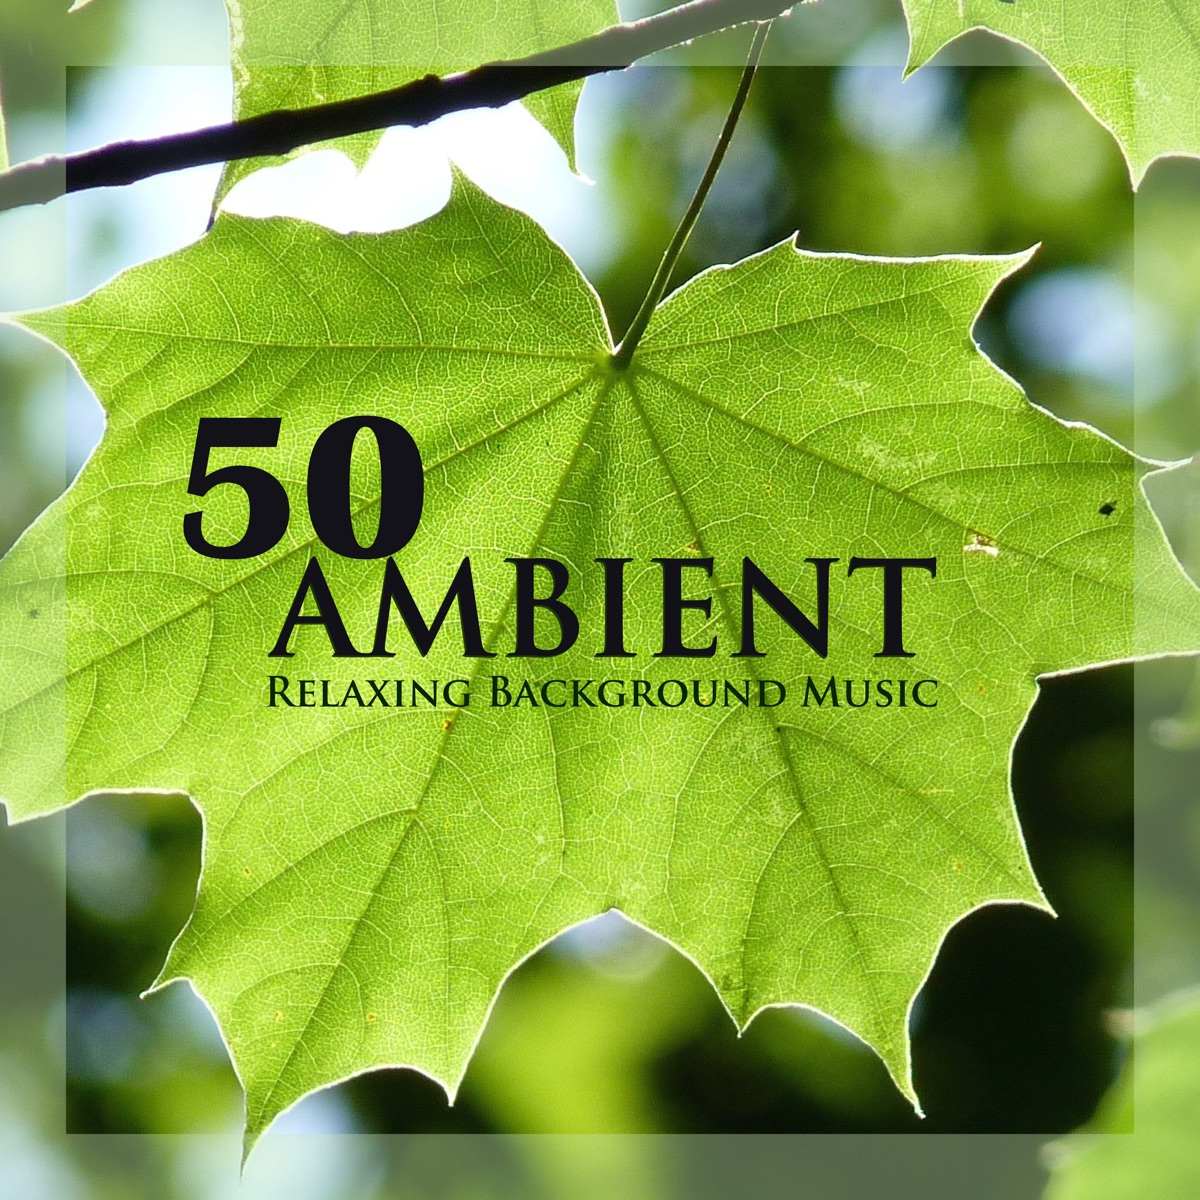 50 Ambient - Relaxing Background Music & Instrumental